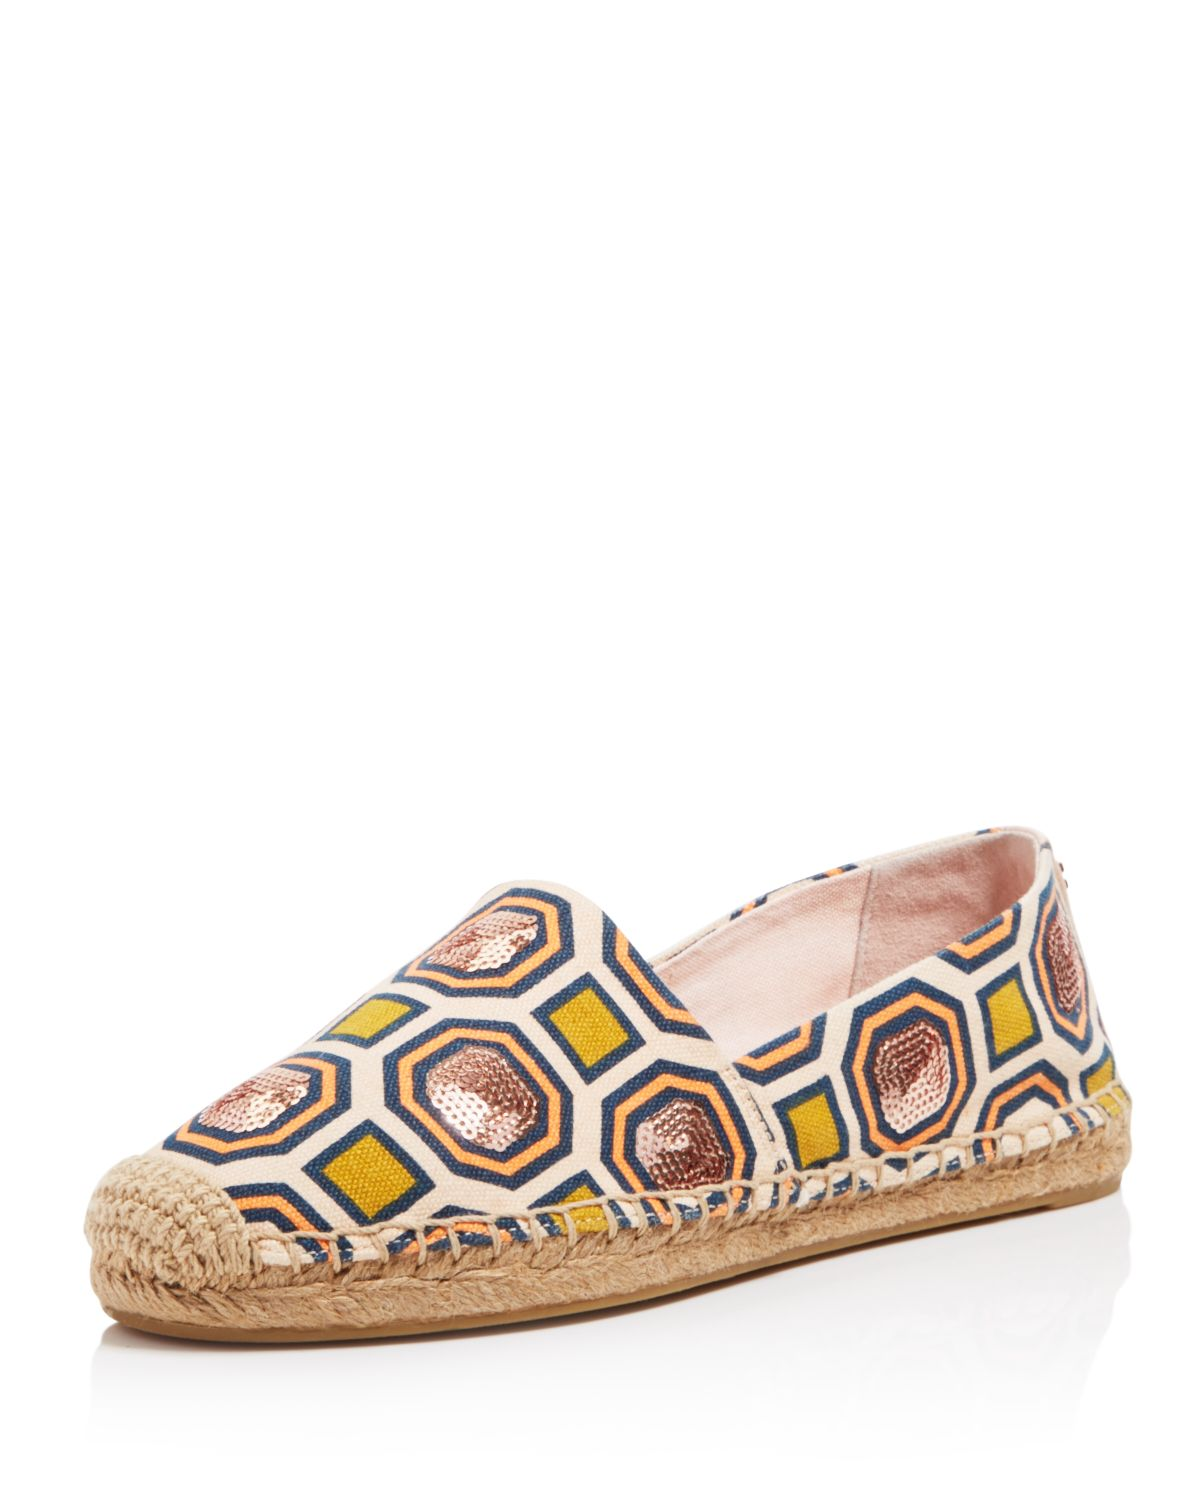 Tory Burch Women's Cecily Embellished Espadrilles